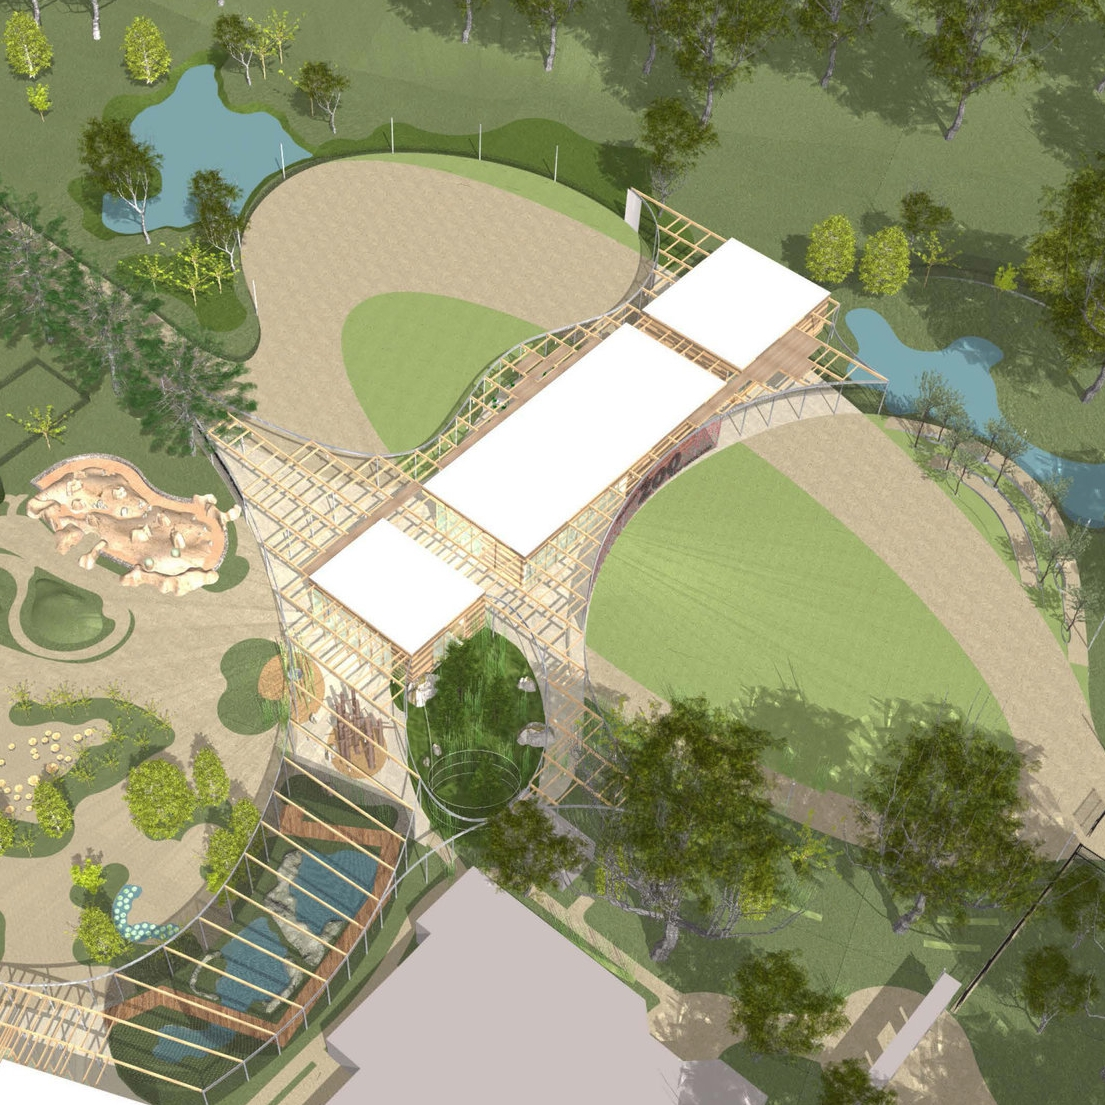 Zoo master plan featuring savanna habitats and design for the entry and arrival plaza